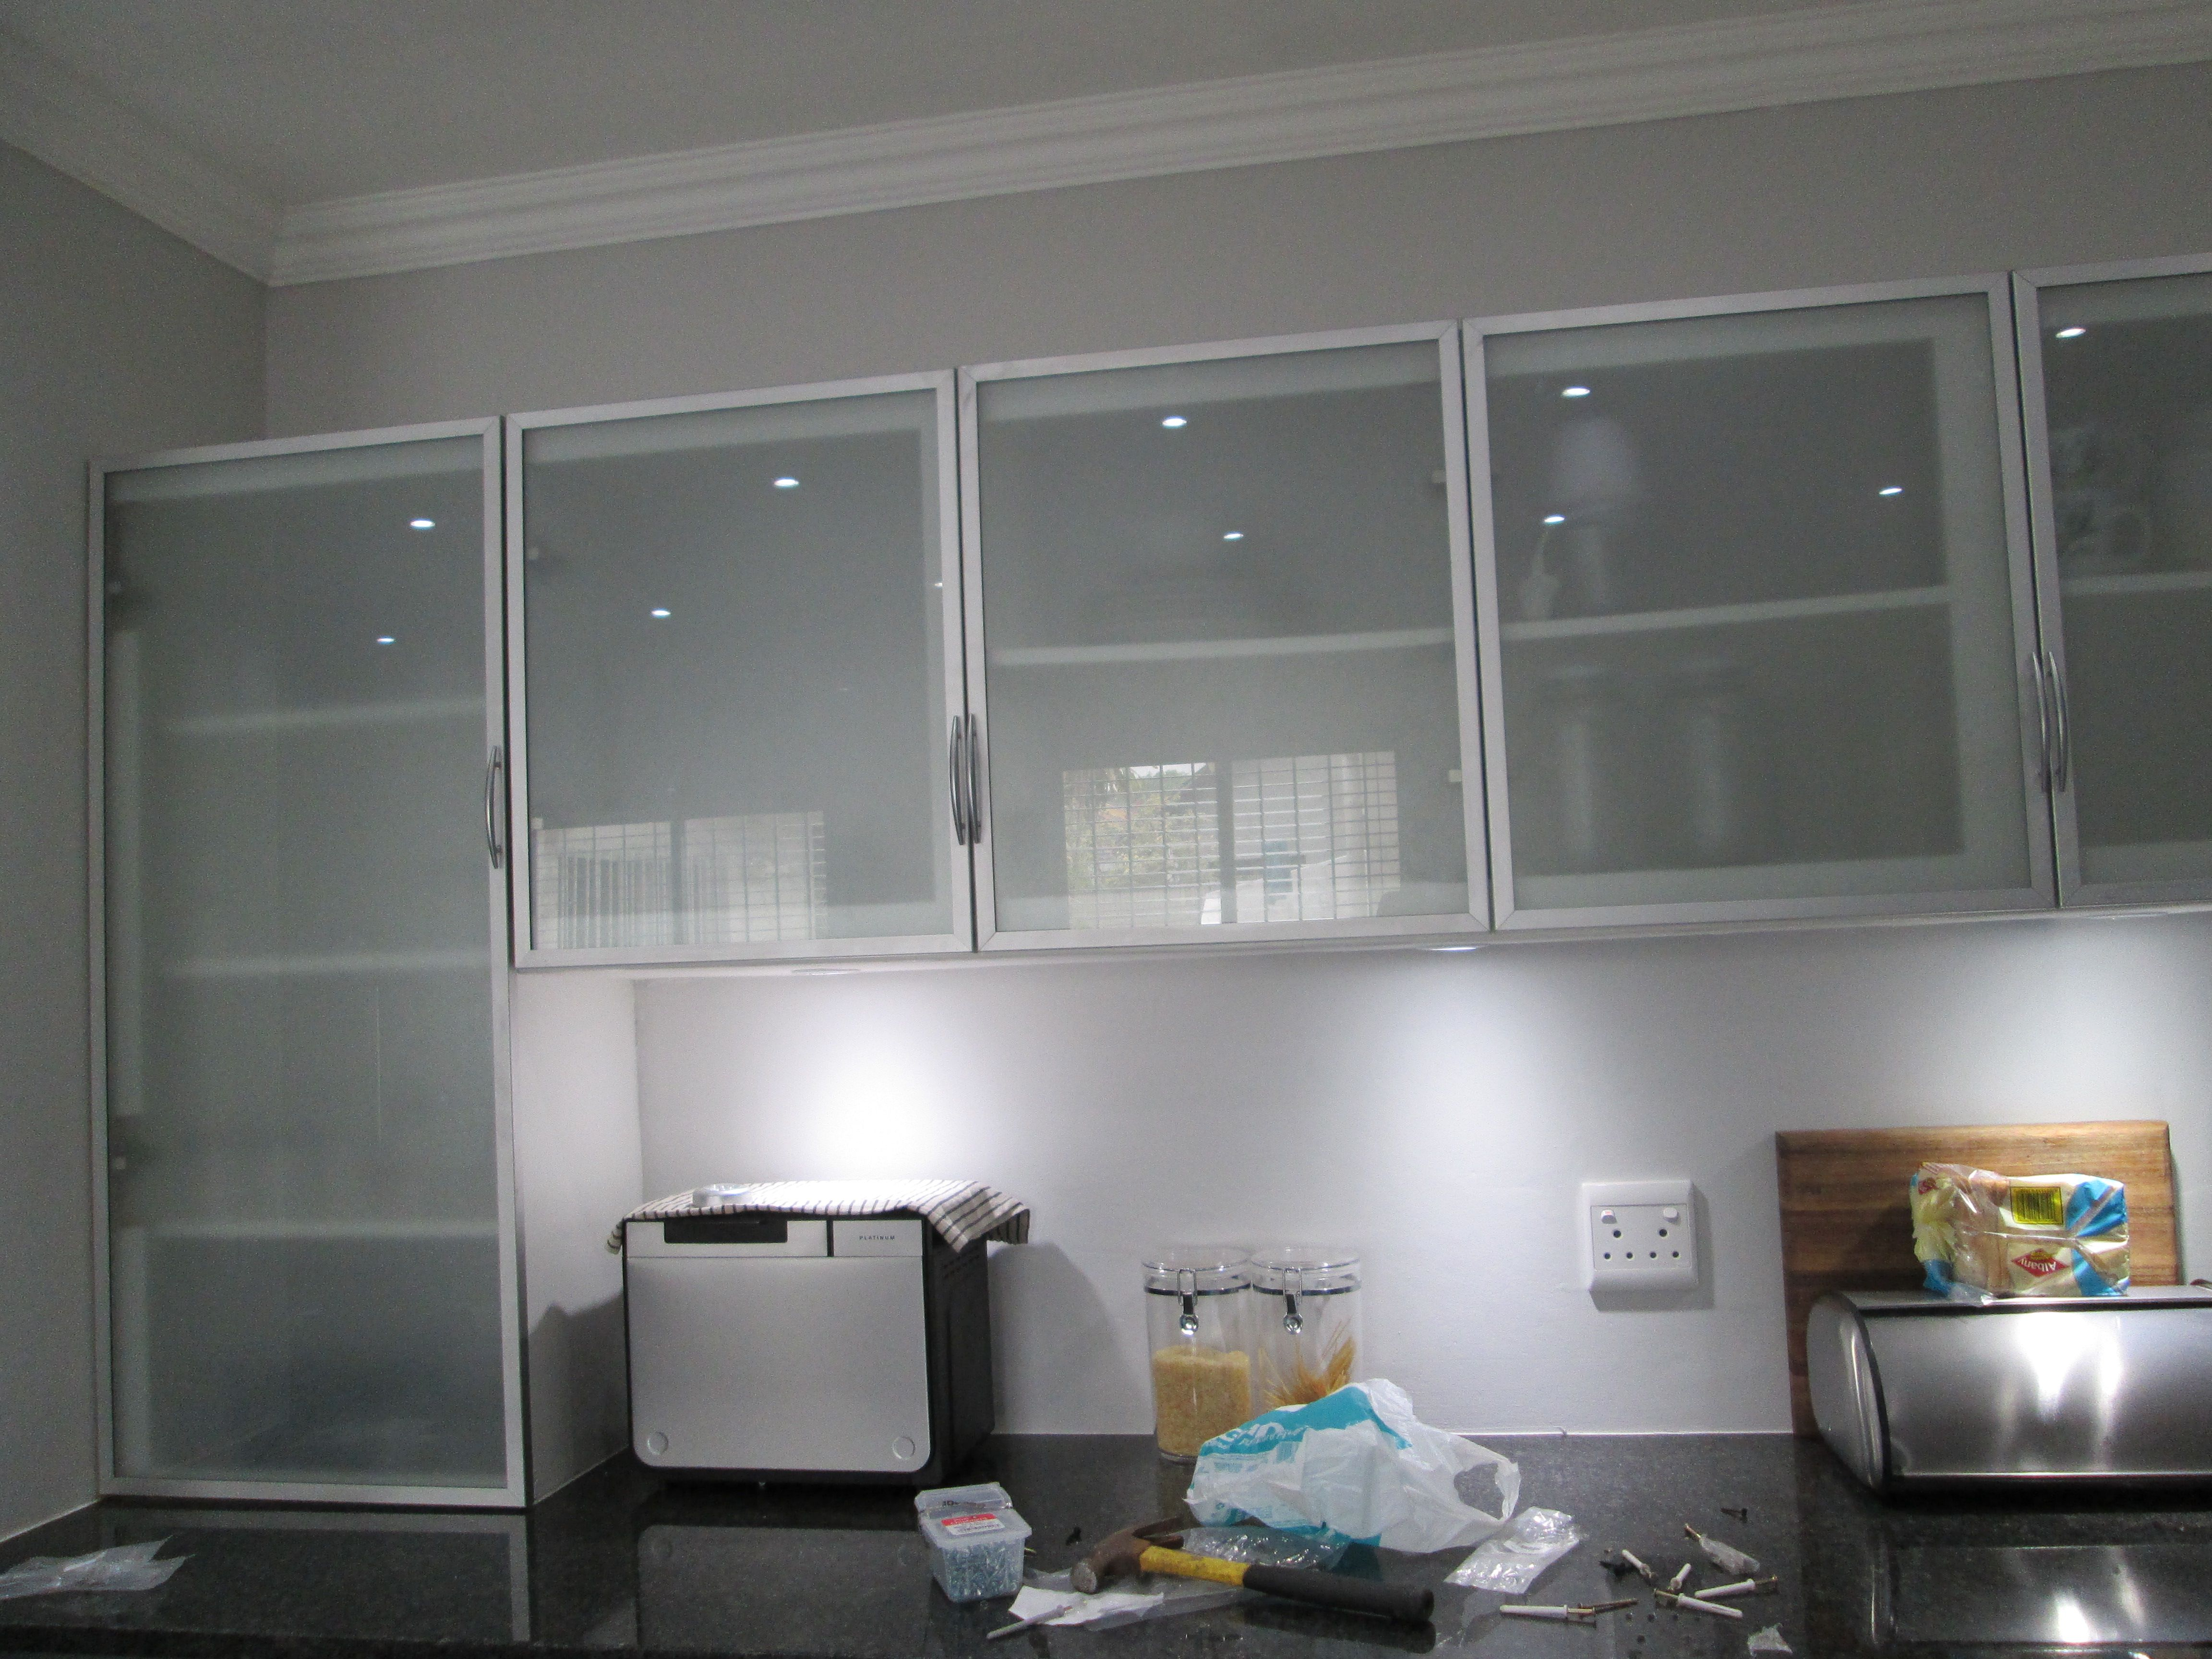 This kitchen is incorporating aluminium frame cabinet doors with frosted glass inserts Kitchen profile glass design